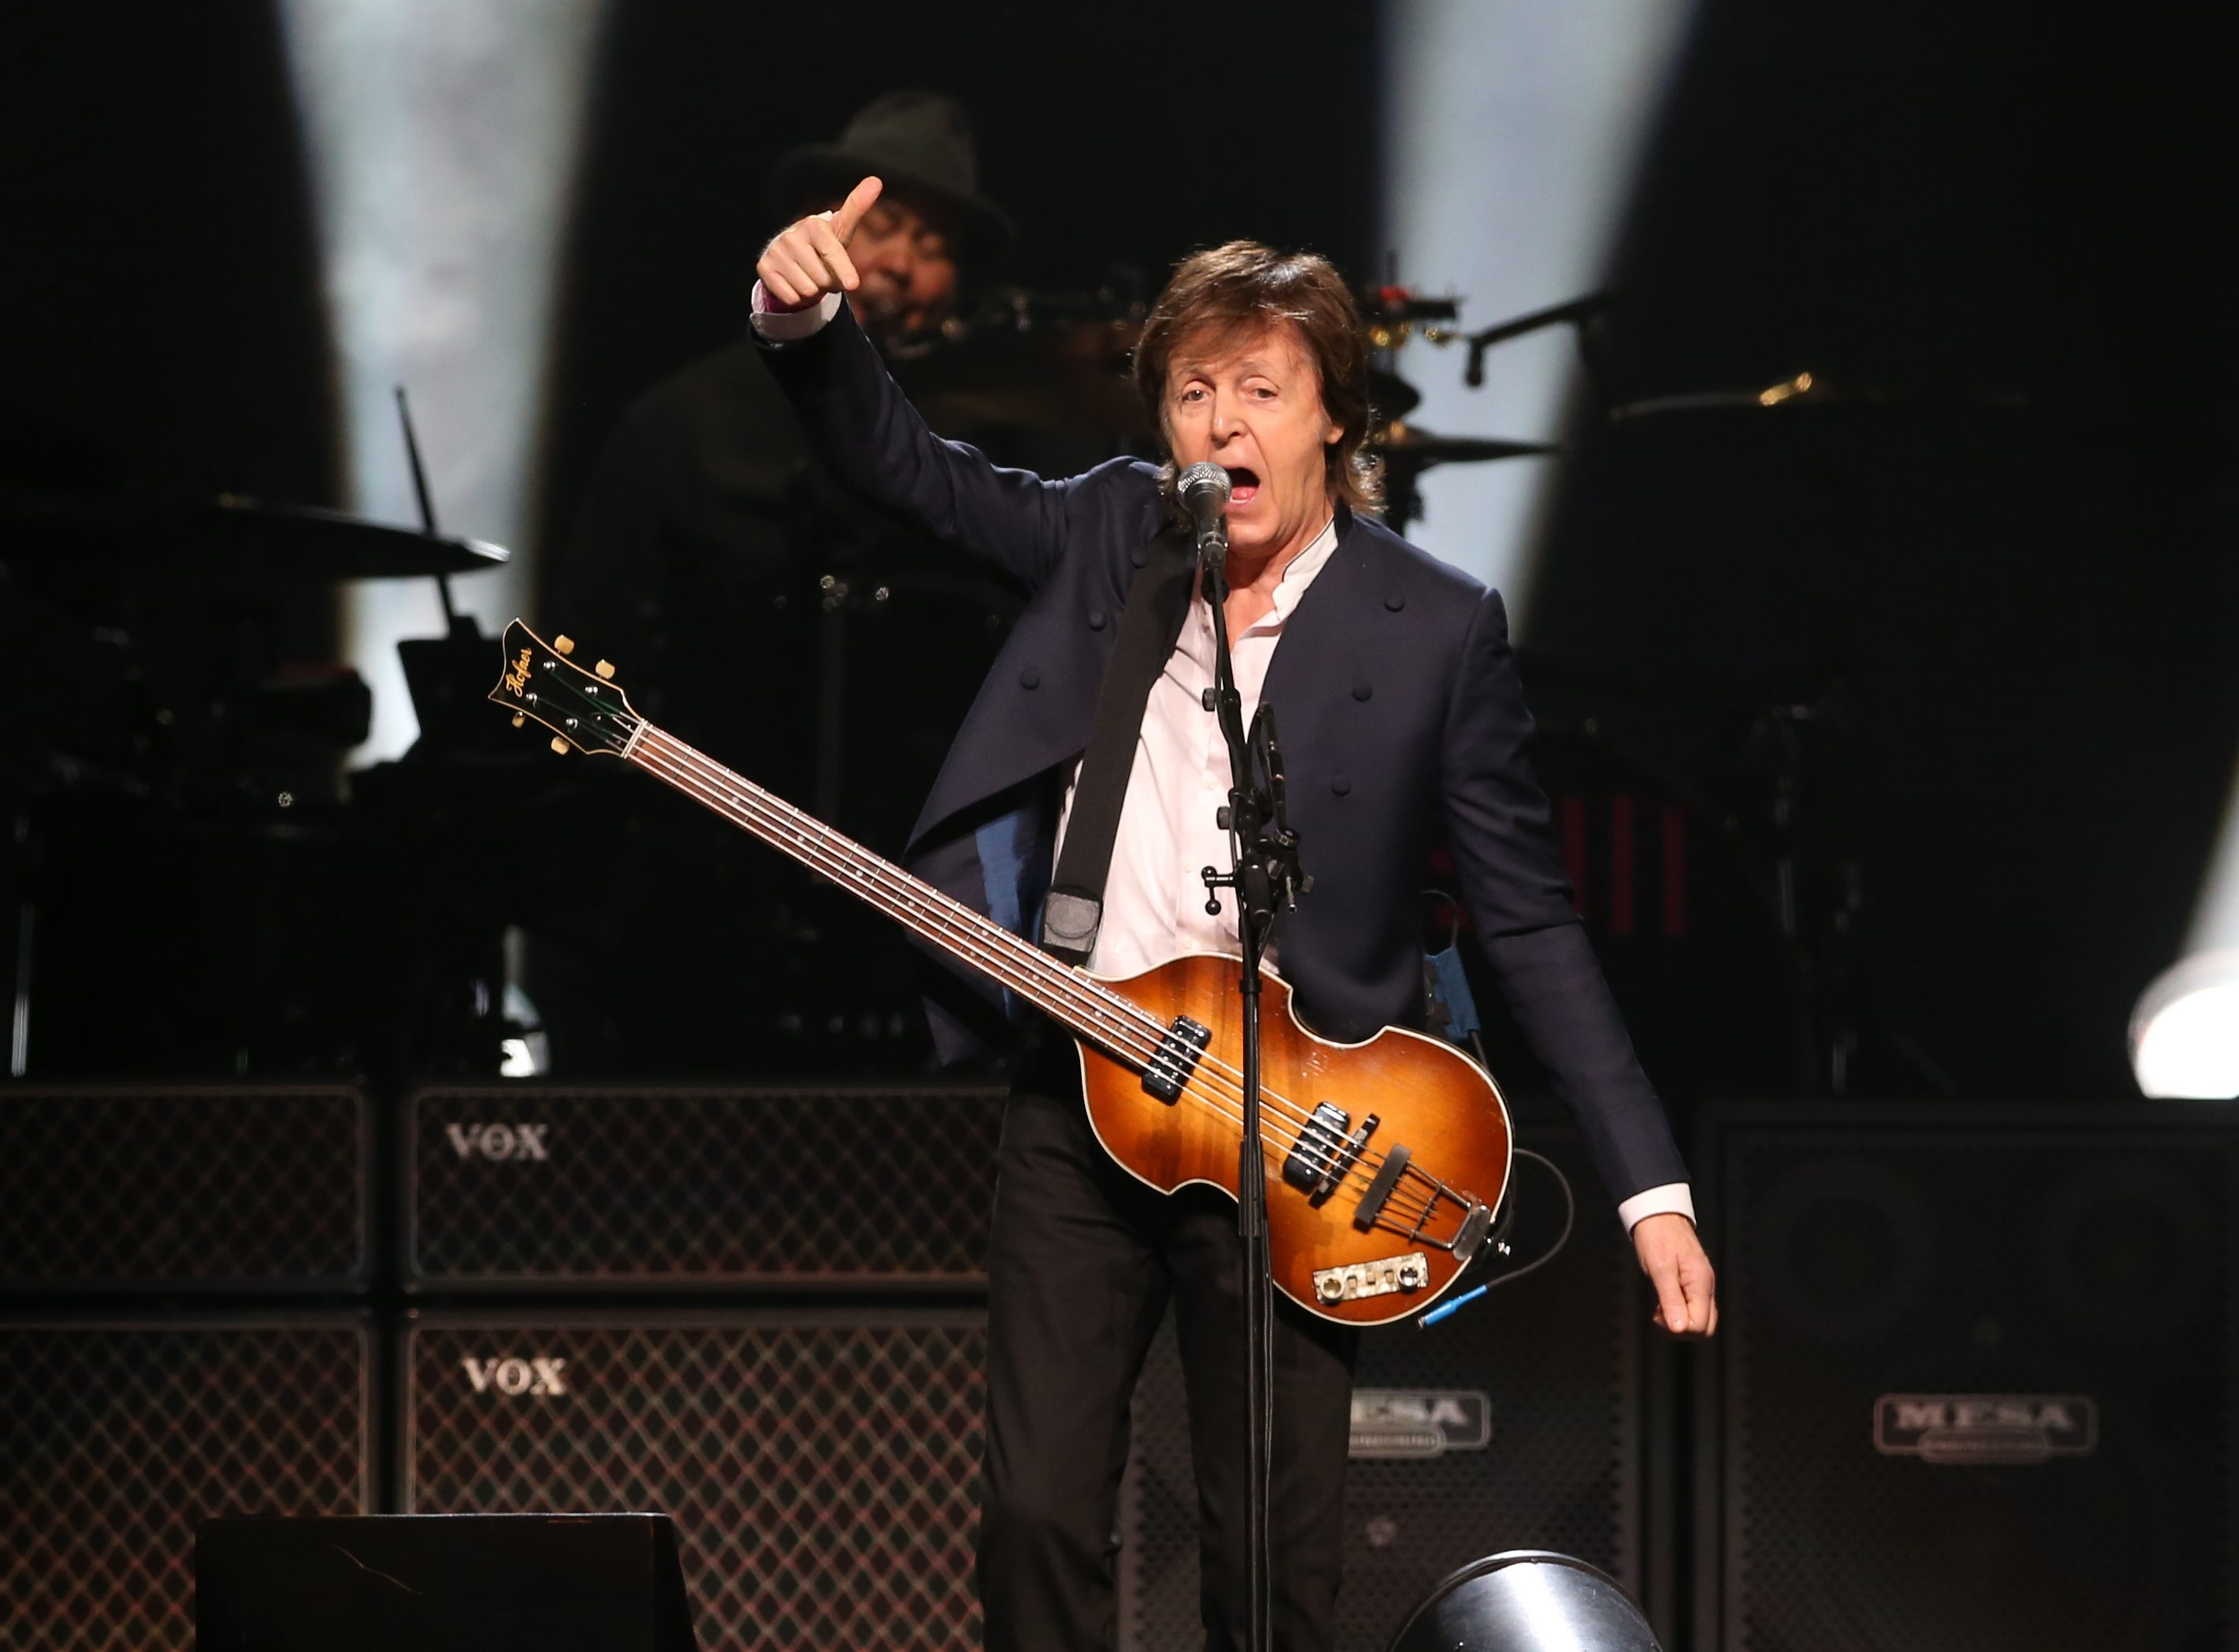 """Ticket """"bots"""" scooped up most of the tickets to Paul McCartney's concert in Buffalo last year before fans had a chance to buy. (Sharon Cantillon/Buffalo News)"""